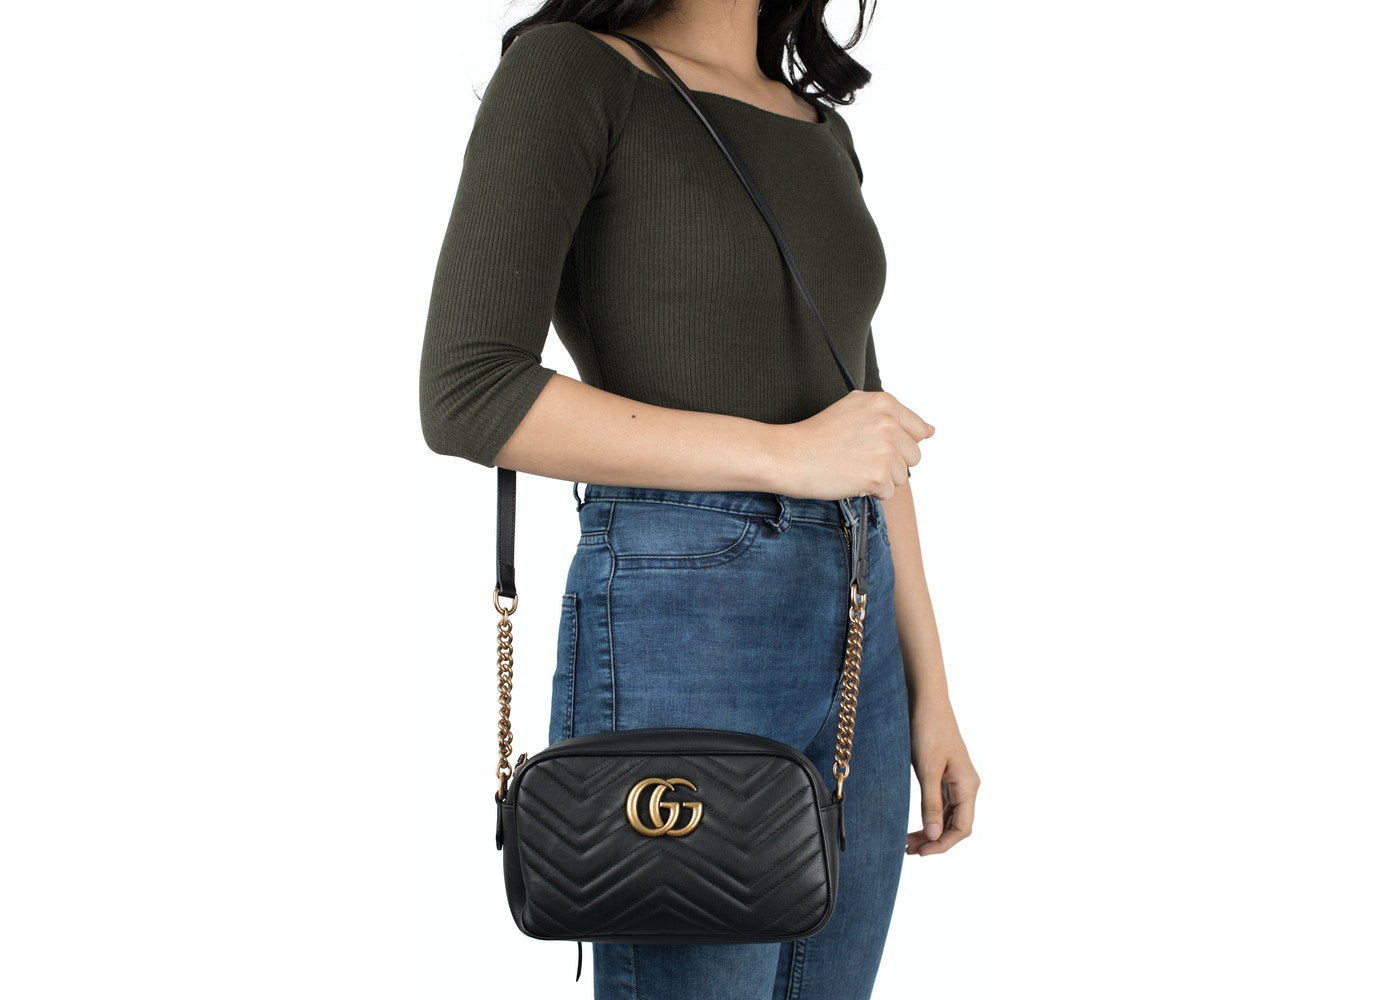 8961eee229f2 Buy & Sell Gucci Luxury Handbags